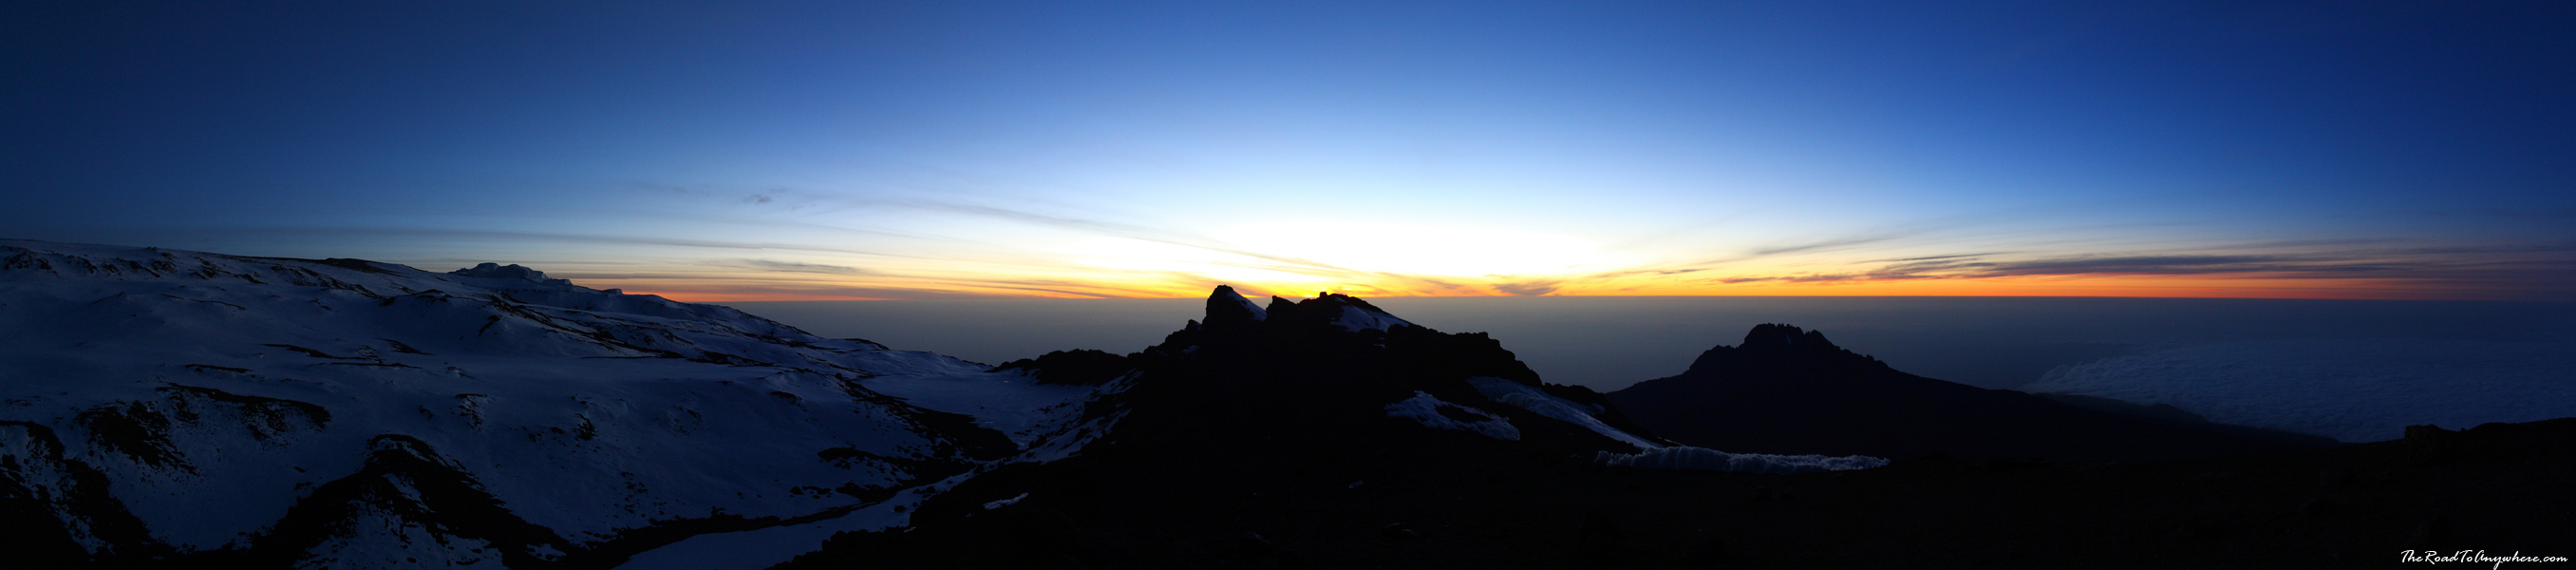 Panoramic view of the sunrise at Stella Point on Mount Kilimanjaro, Tanzania